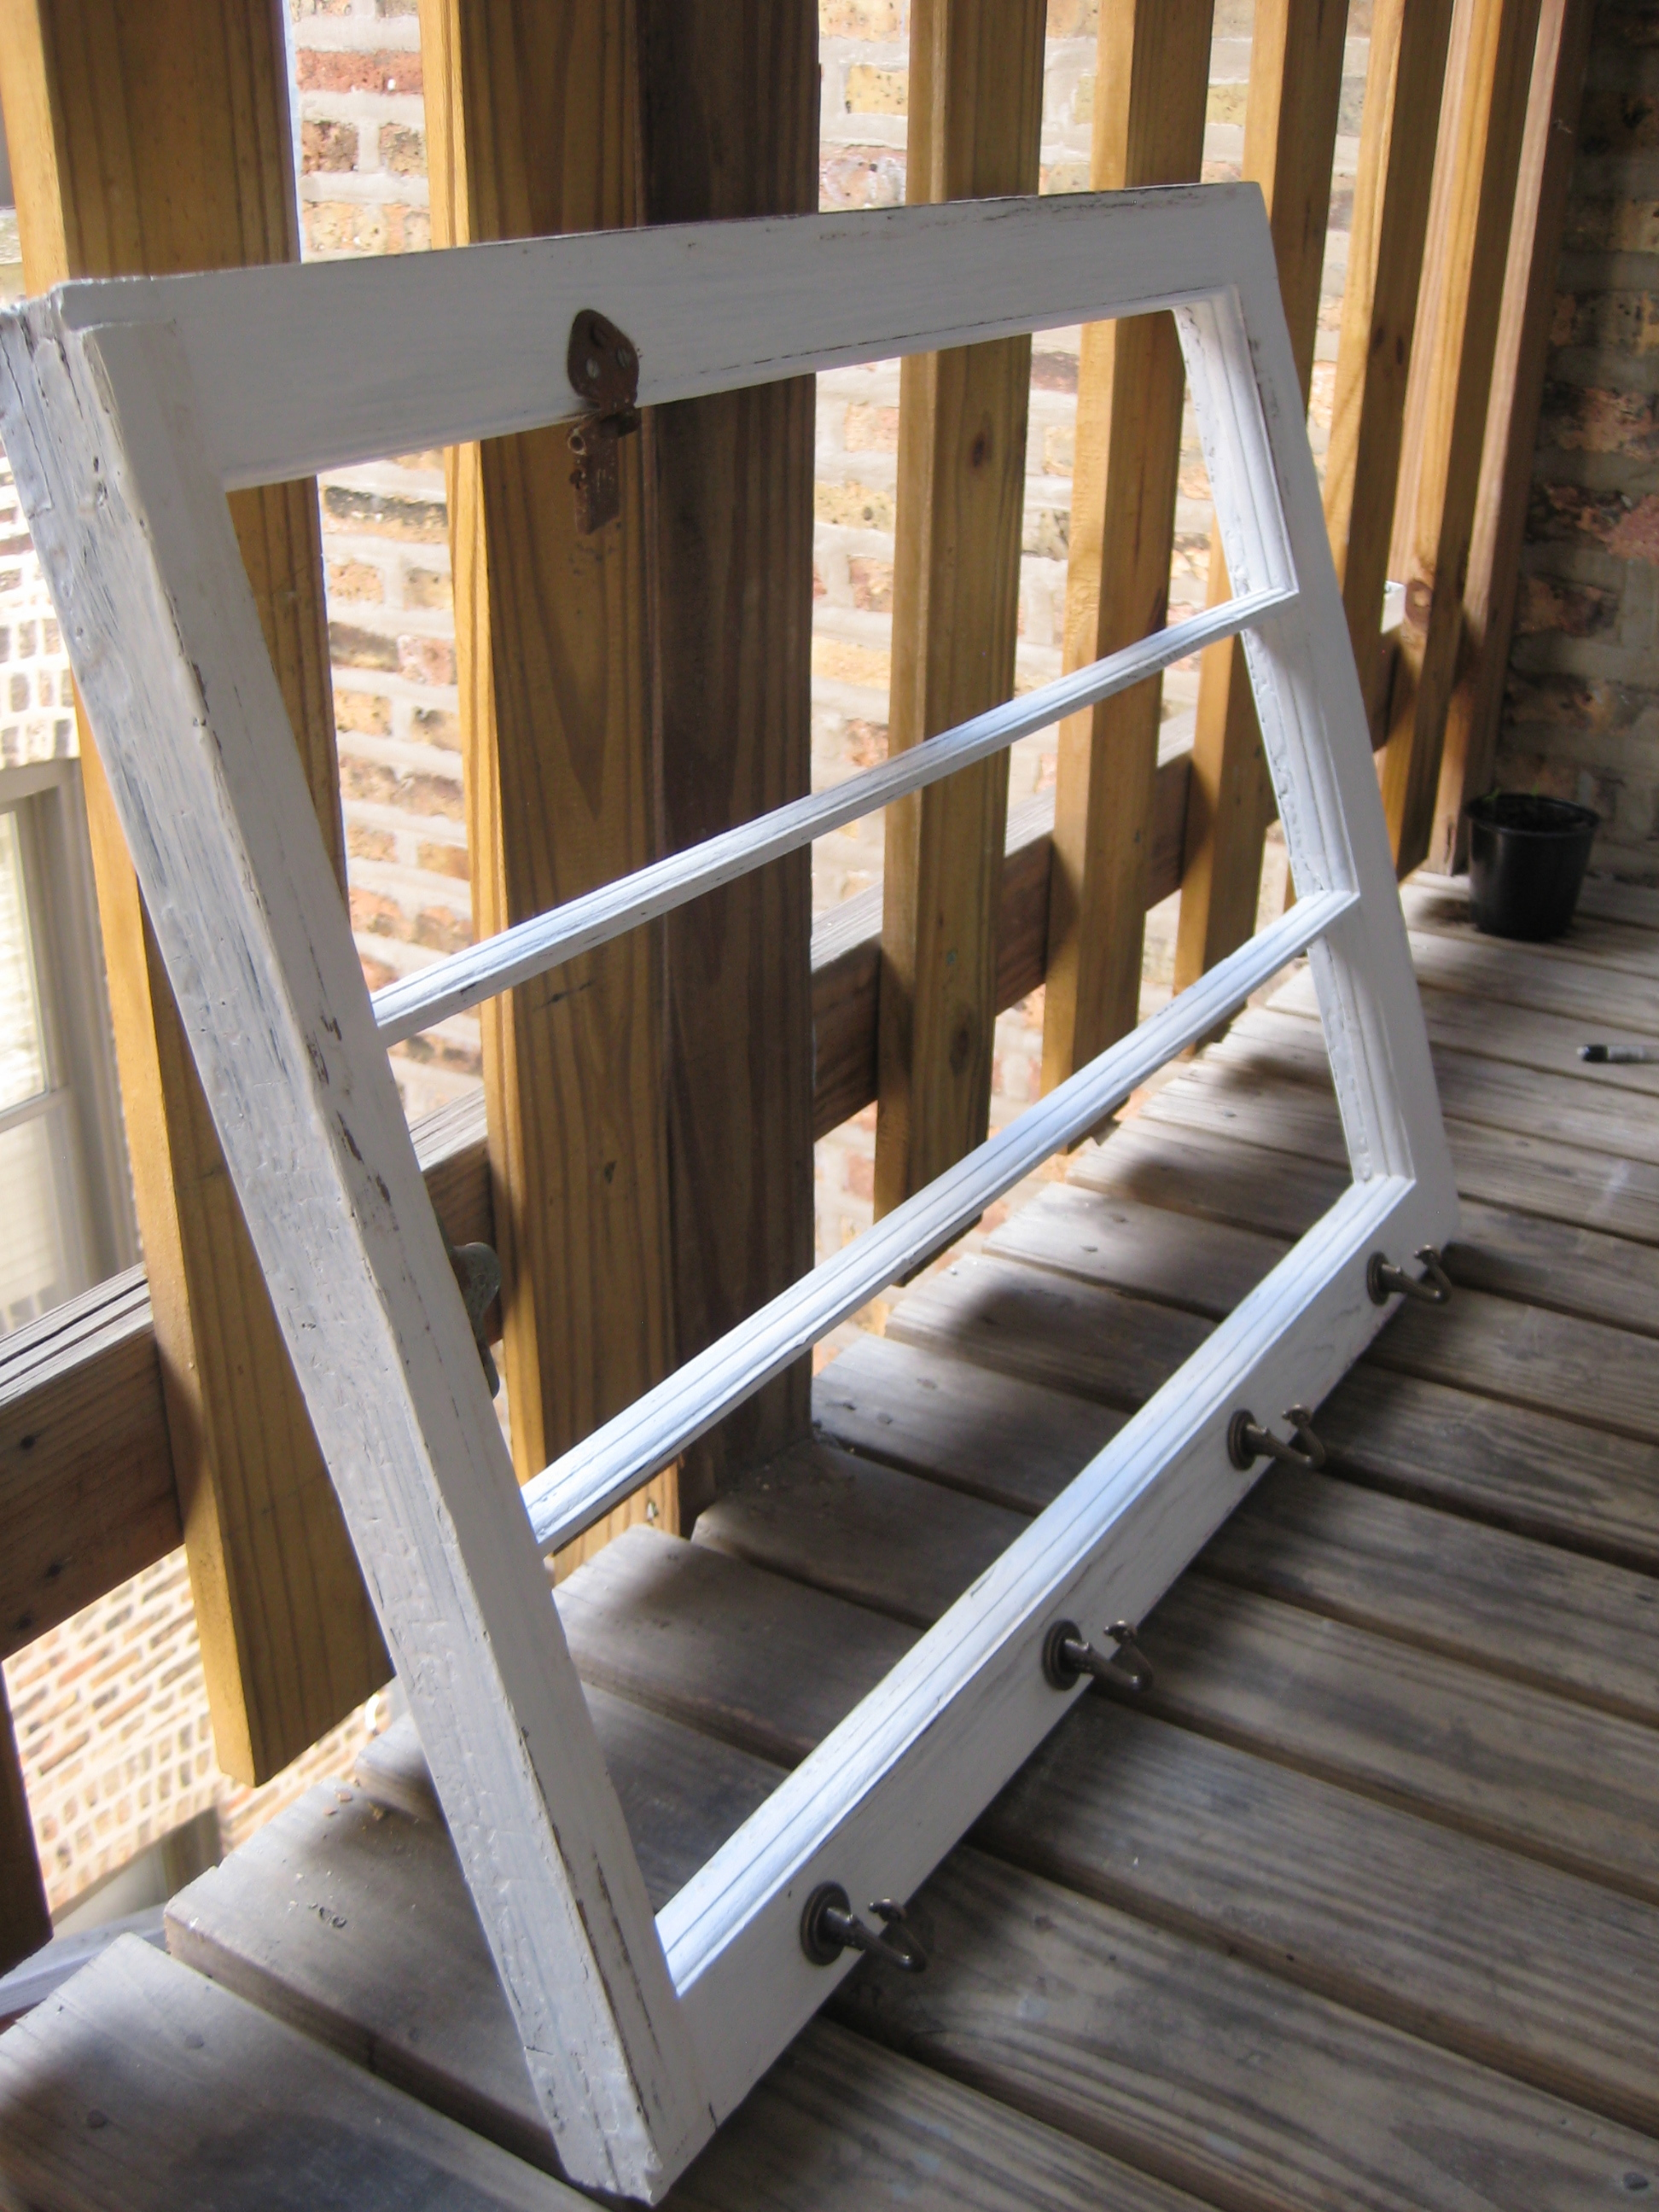 Picture of Upcycled Window Frame Scarf Organizer